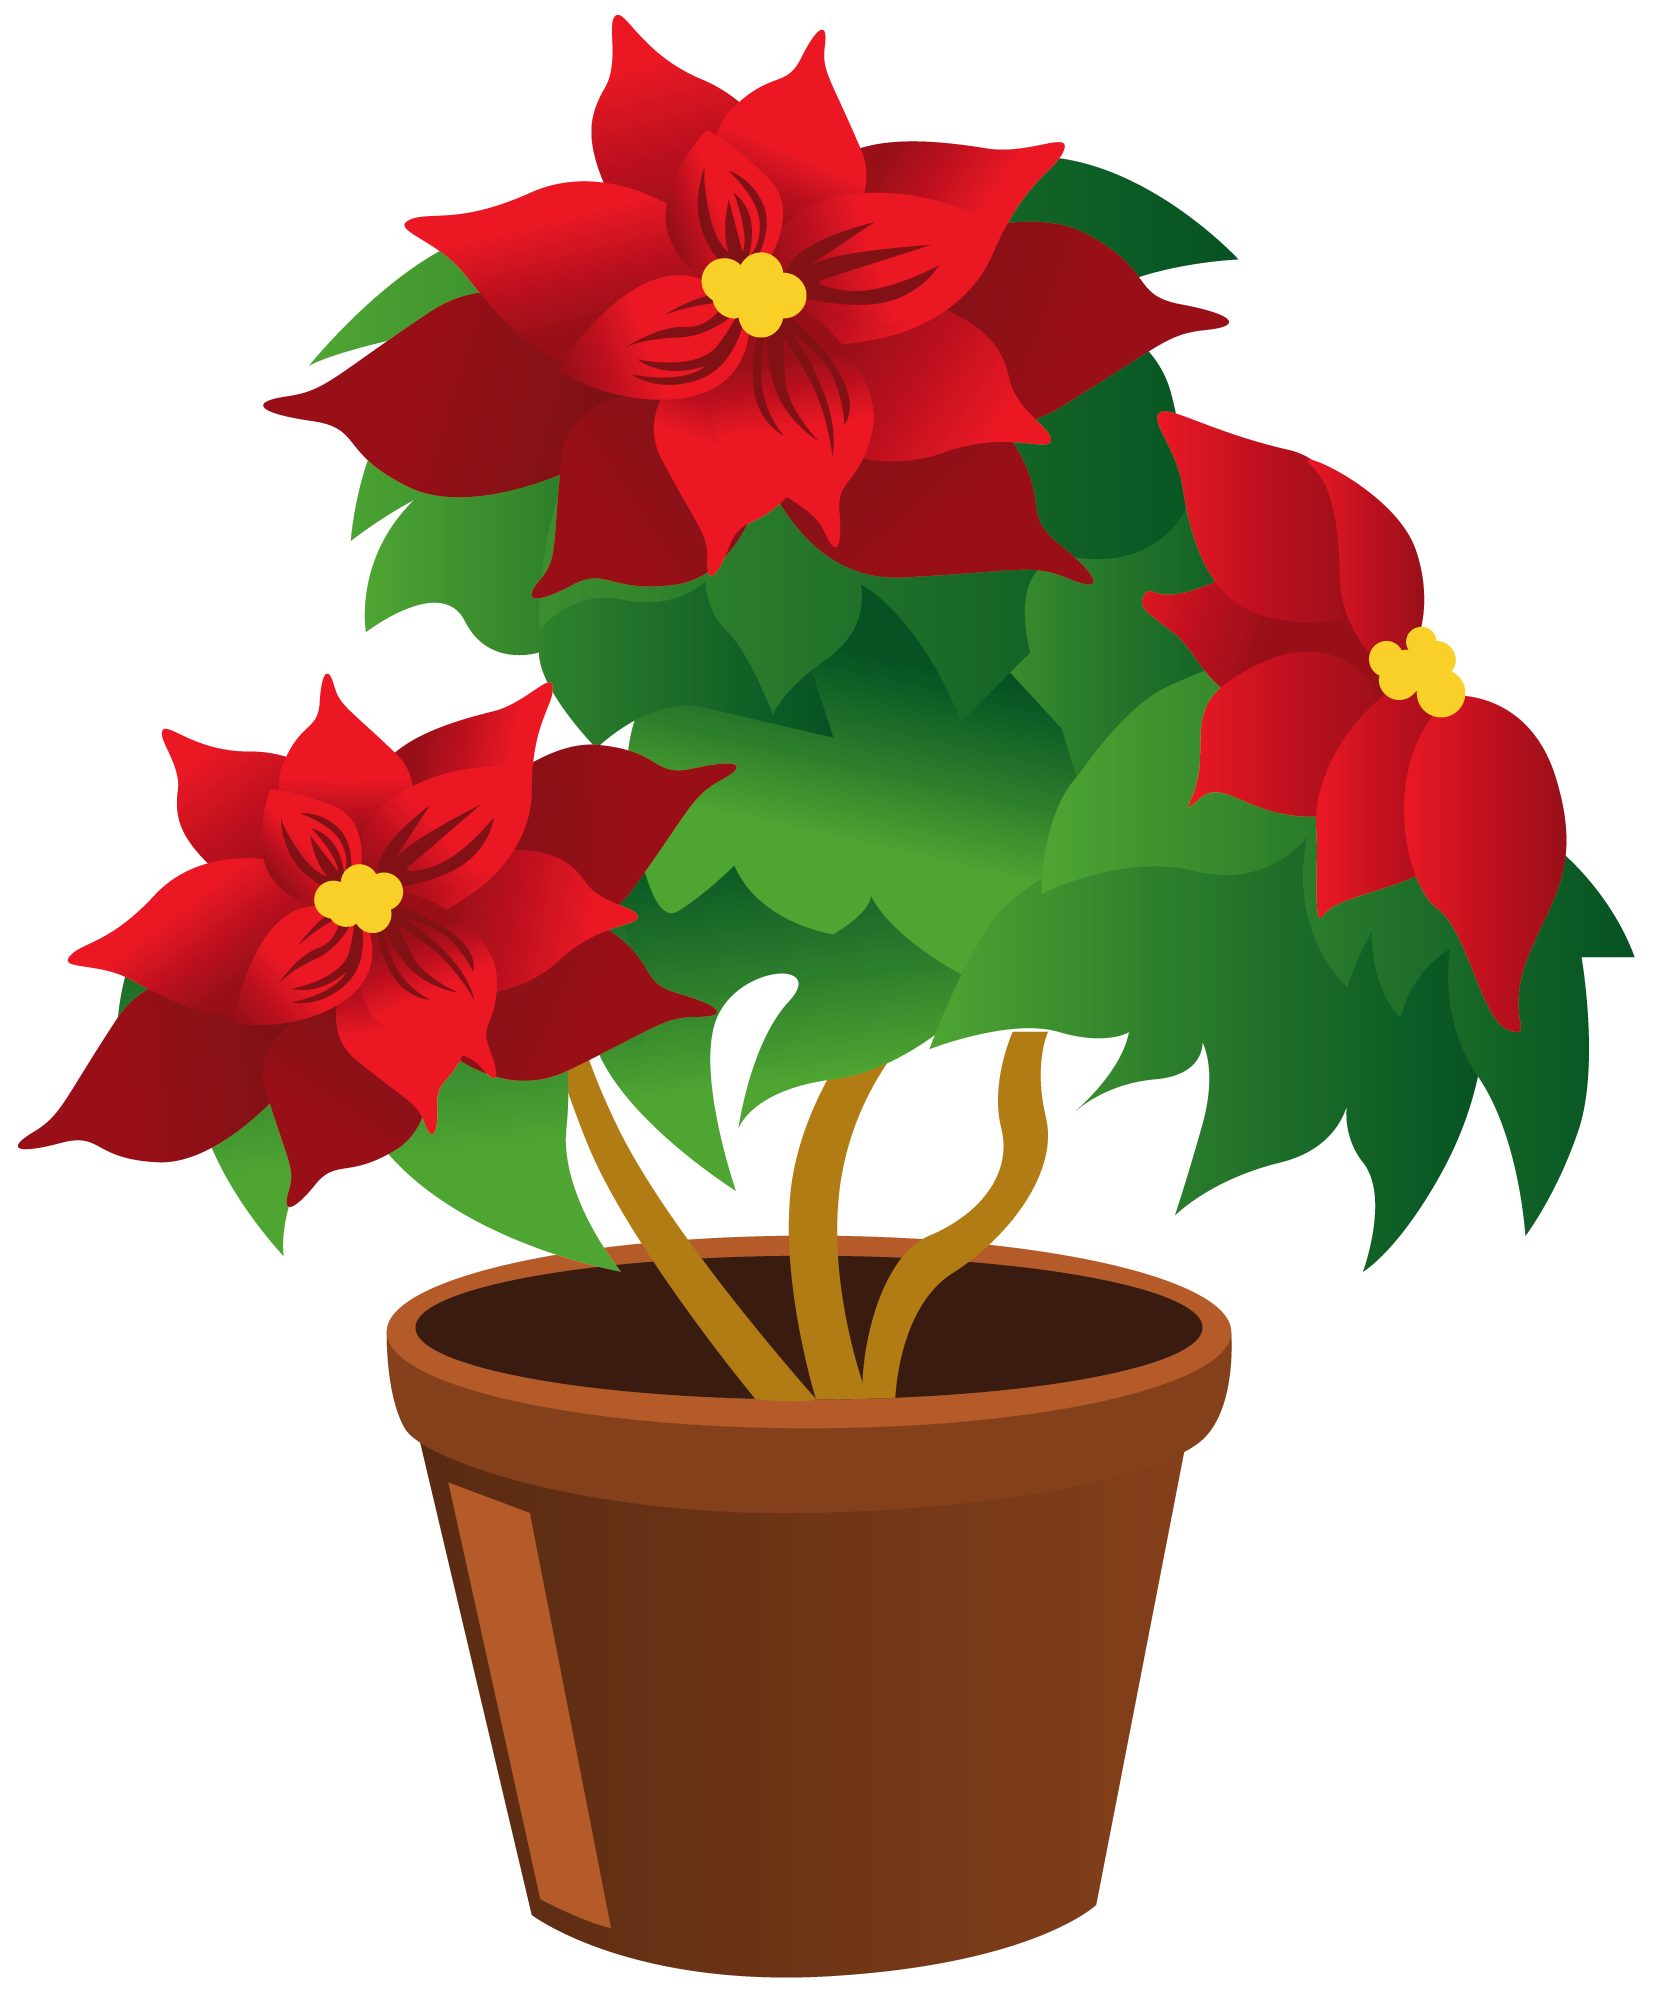 Flower in a pot clipart picture royalty free flower pot 12.png | Tree | Pinterest | Flower, Pictures and Pots picture royalty free